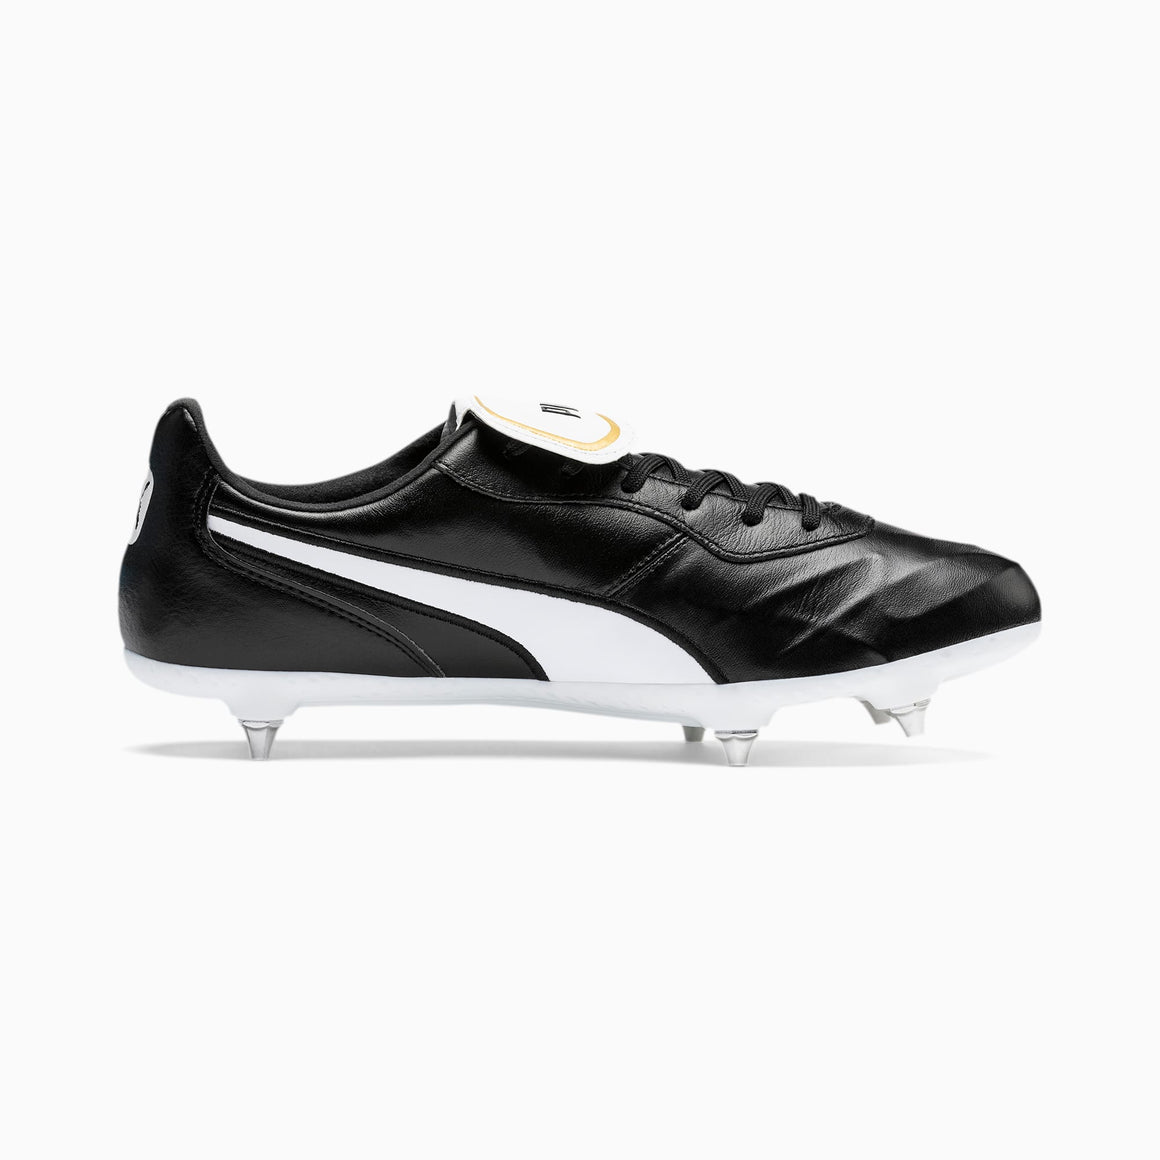 Puma King Top SG Senior